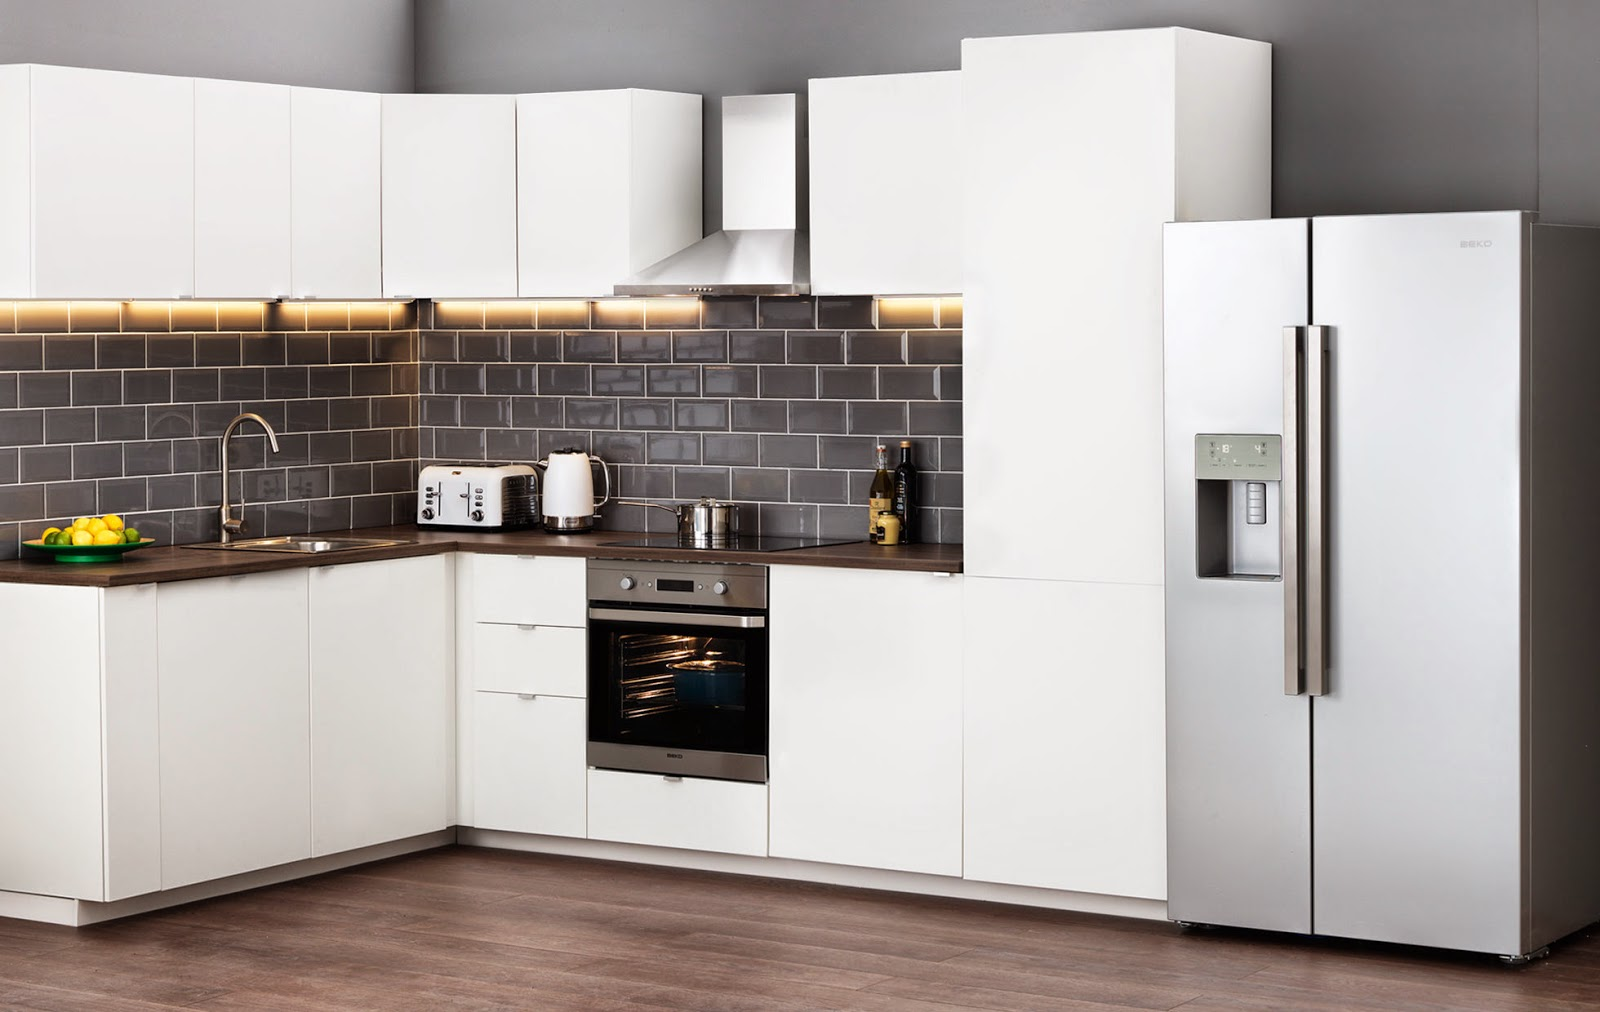 designer kitchens direct. designer kitchensbespoke kitchens